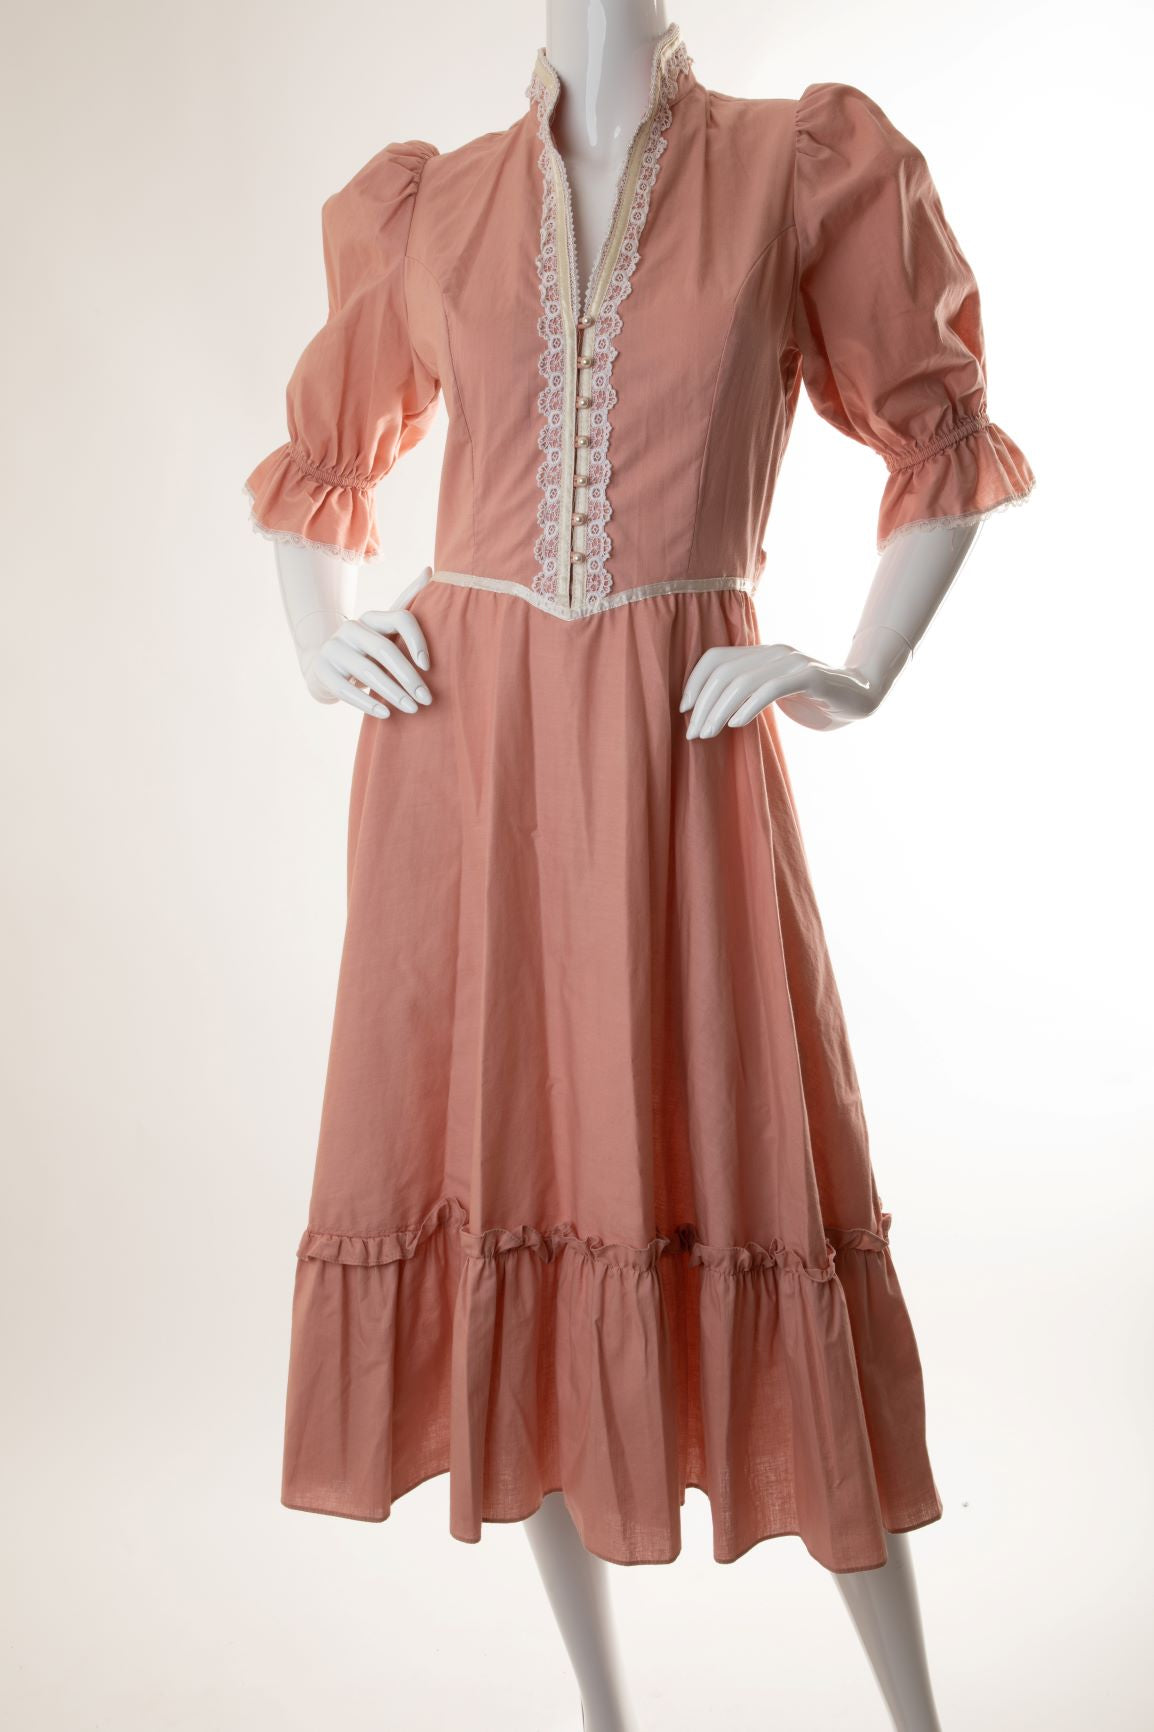 Vintage - Prairie Ruffle Dress with Lace Trim and Sash